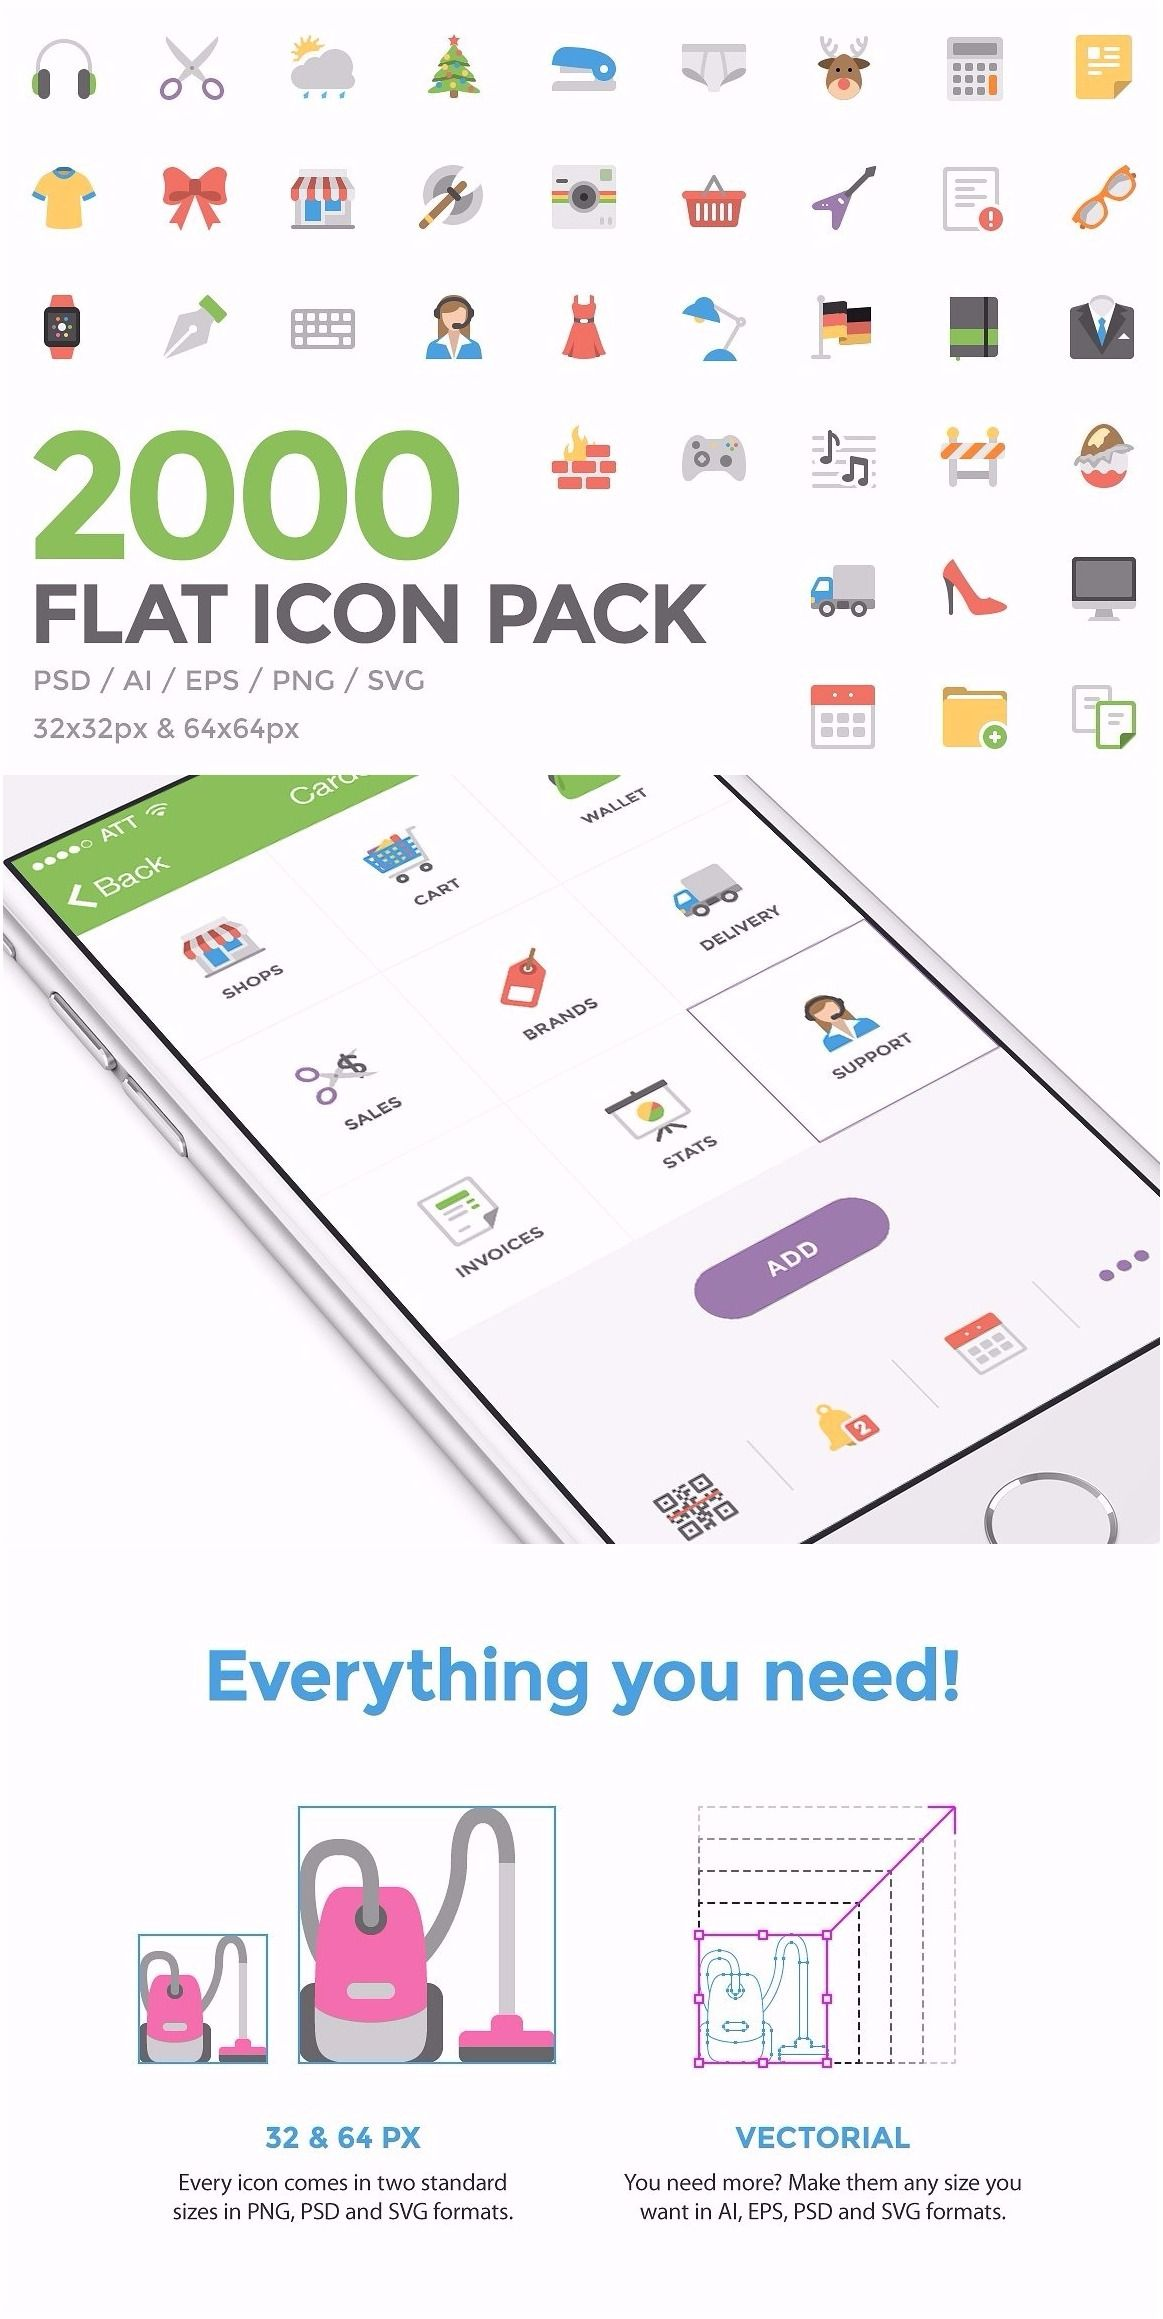 Flat Icon Pack 2000 handcrafted and pixelperfect icons